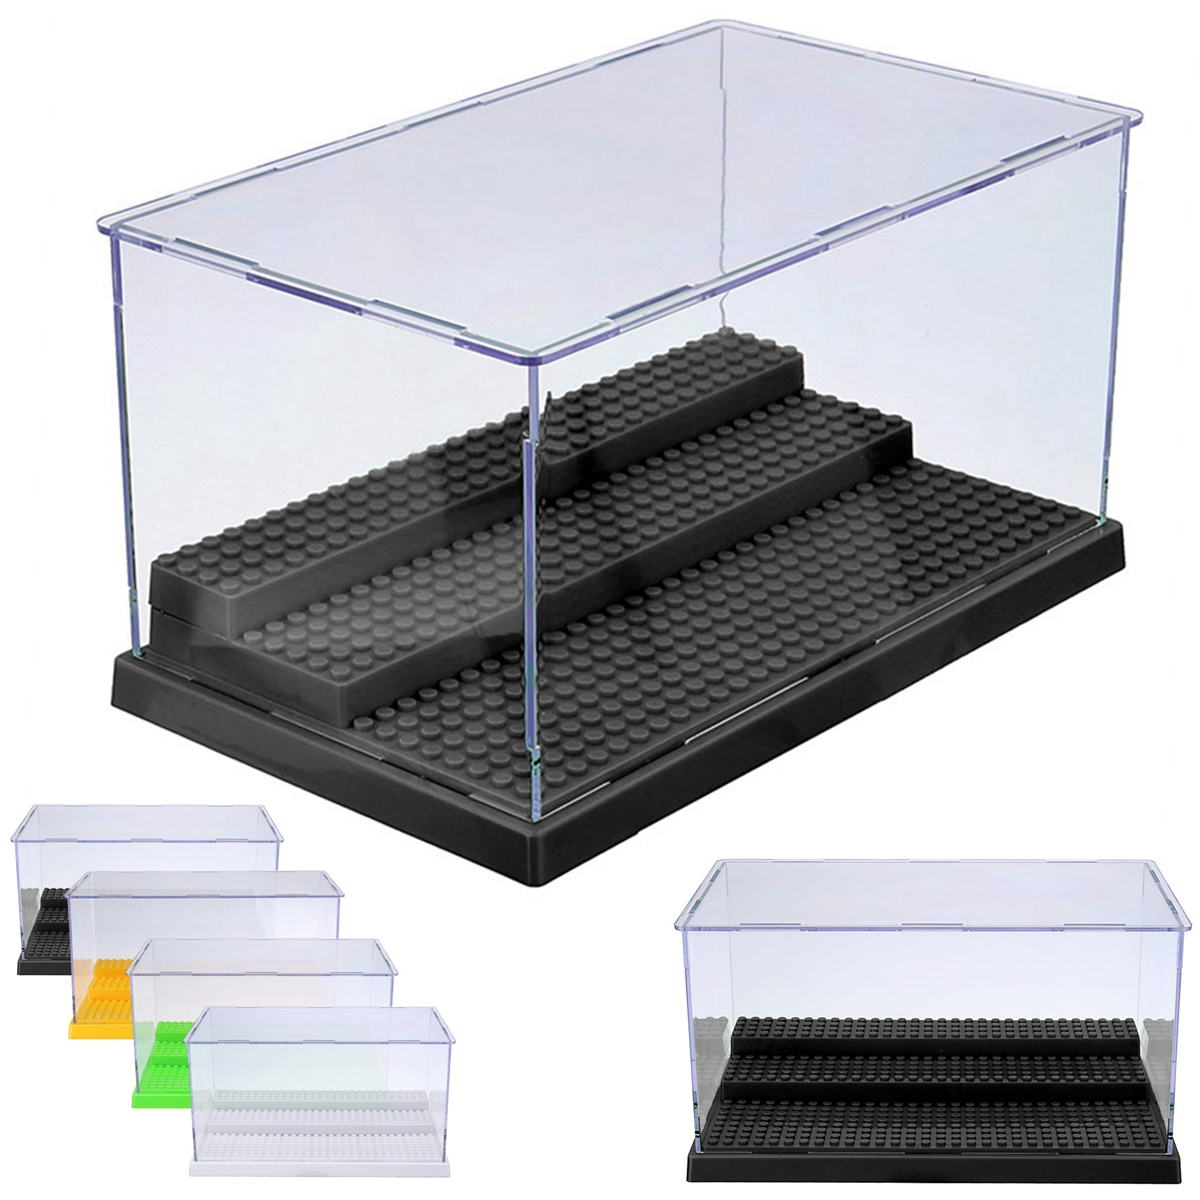 1pc 3 Steps Display Case/Box Dustproof ShowCase Gray Base For Le goings Blocks Acrylic Plastic Display Box Case 25.5X15.5X13.8cm Головная гарнитура